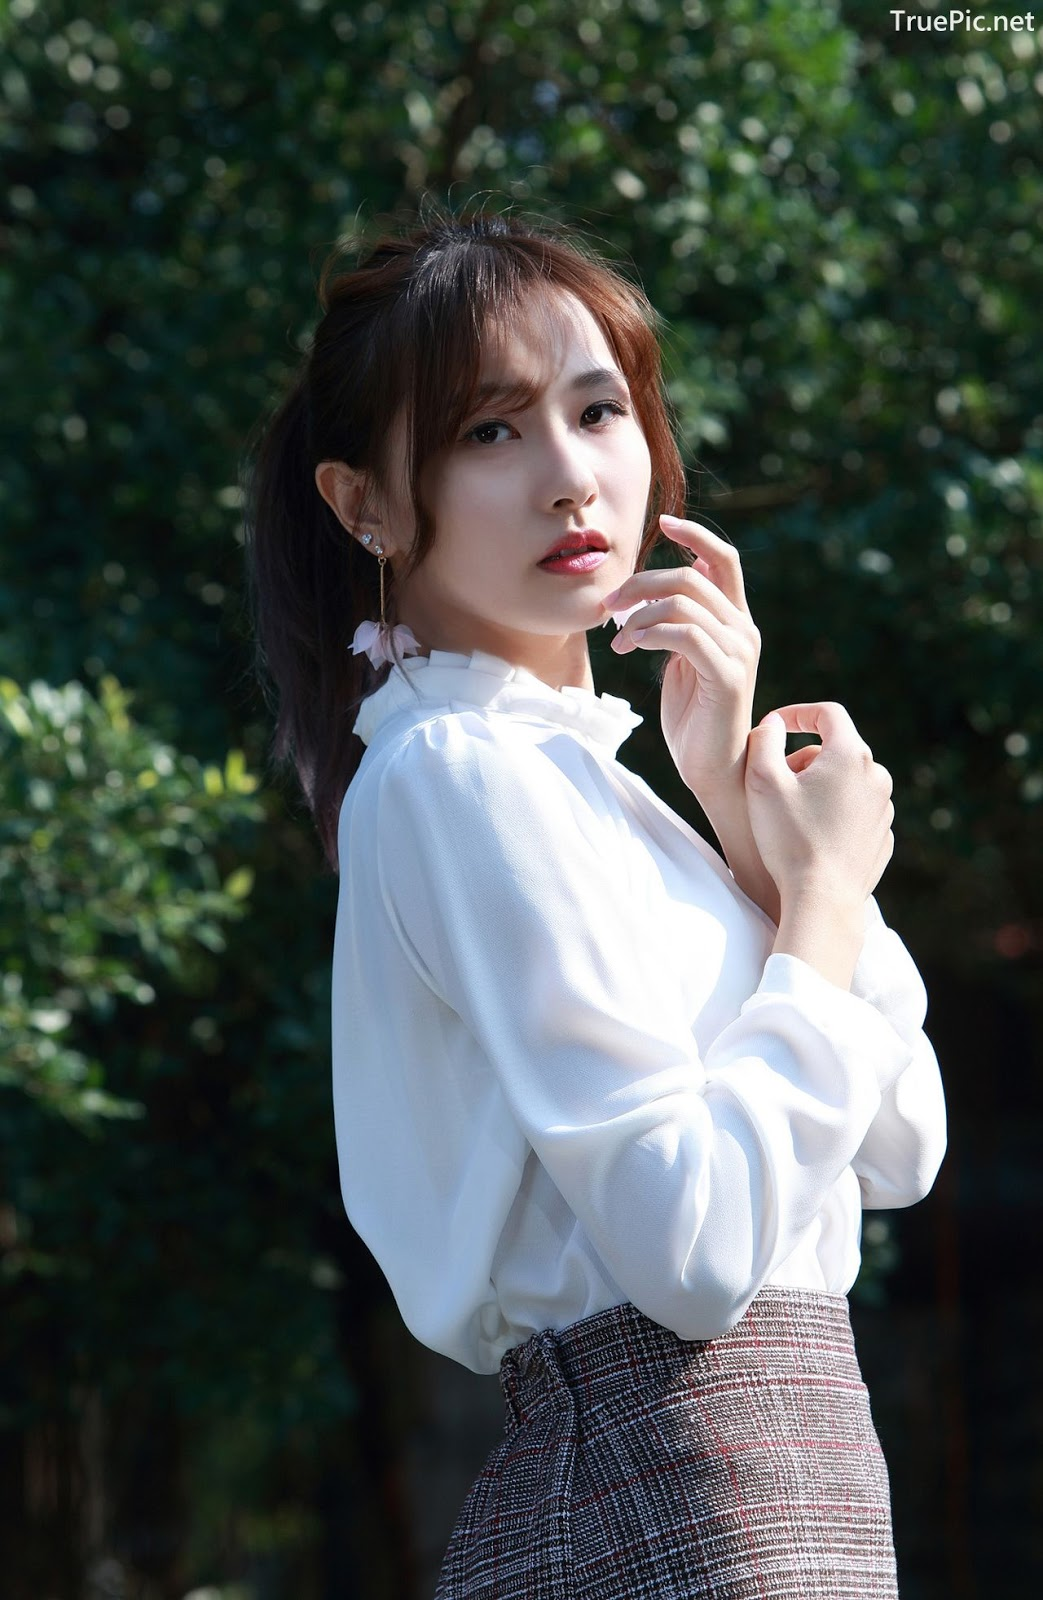 Image-Taiwanese-Model-郭思敏-Pure-And-Gorgeous-Girl-In-Office-Uniform-TruePic.net- Picture-3